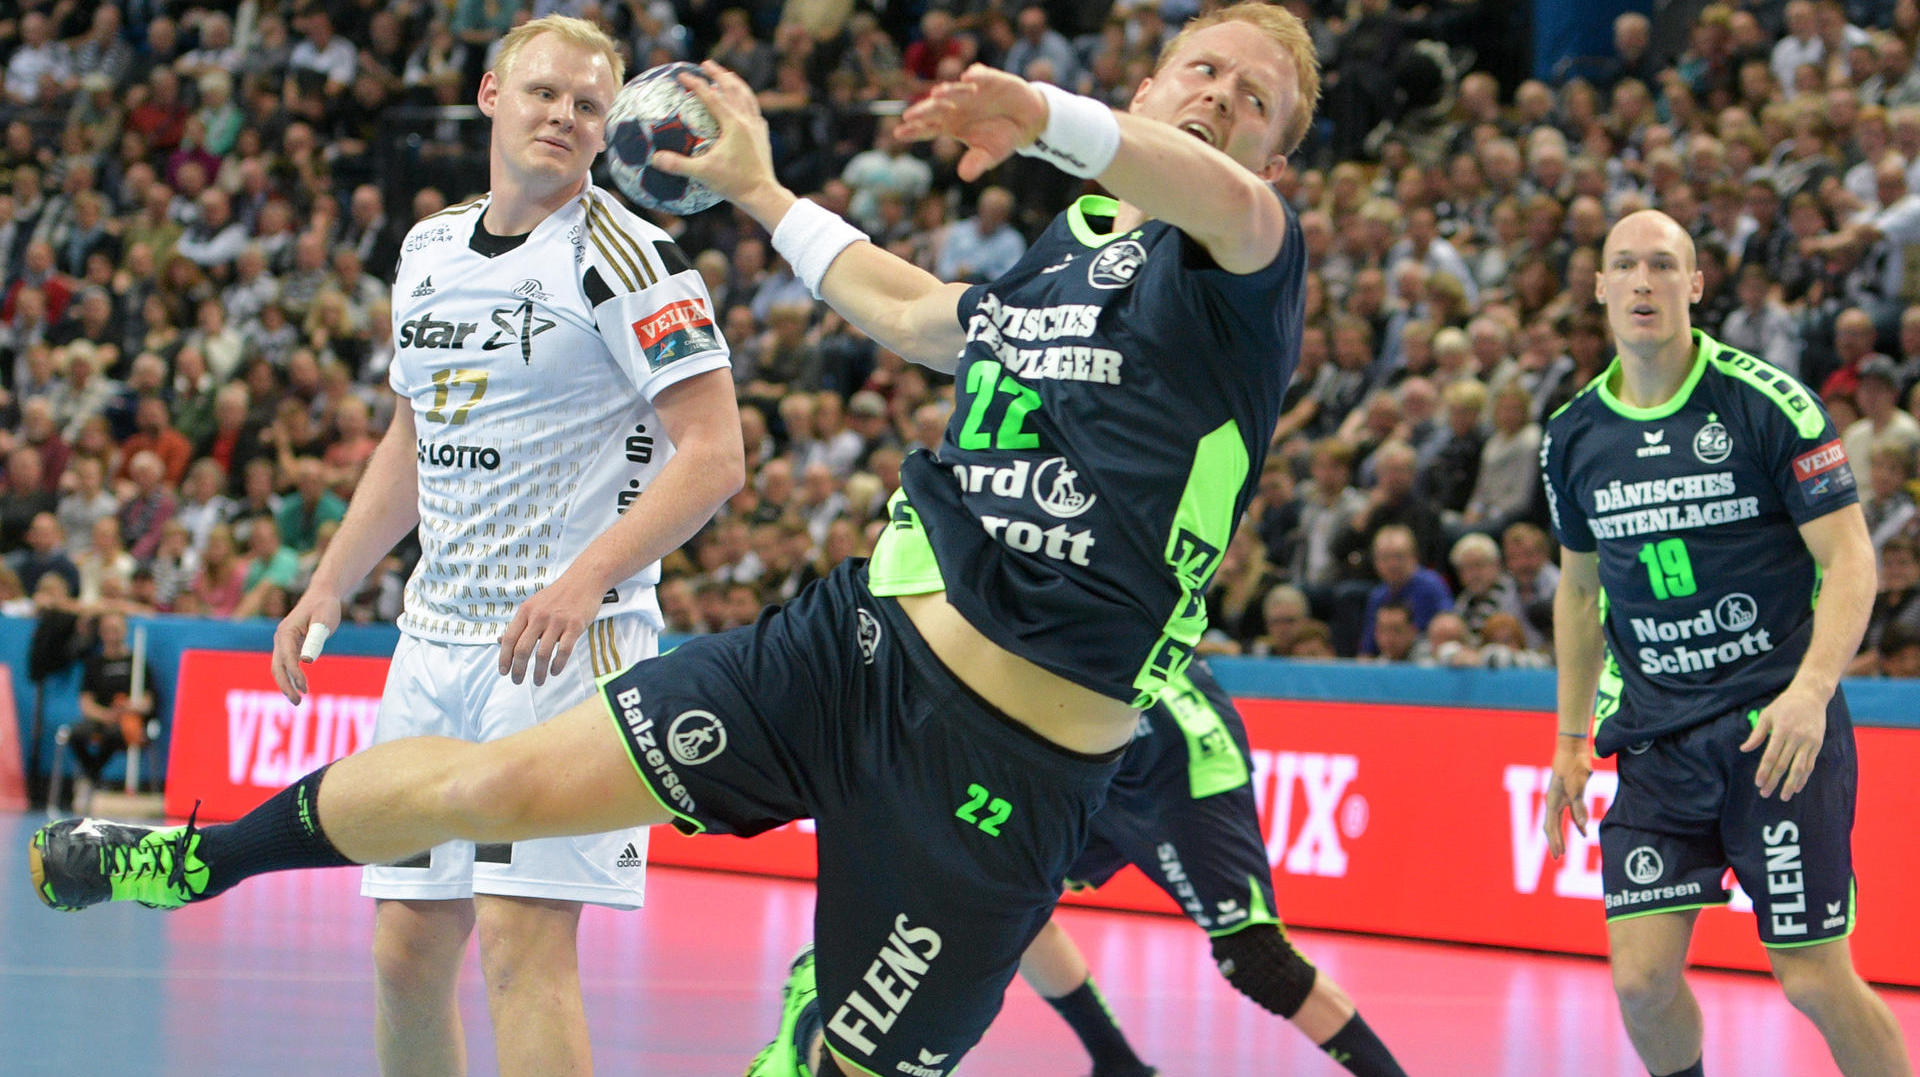 sg flensburg champions league